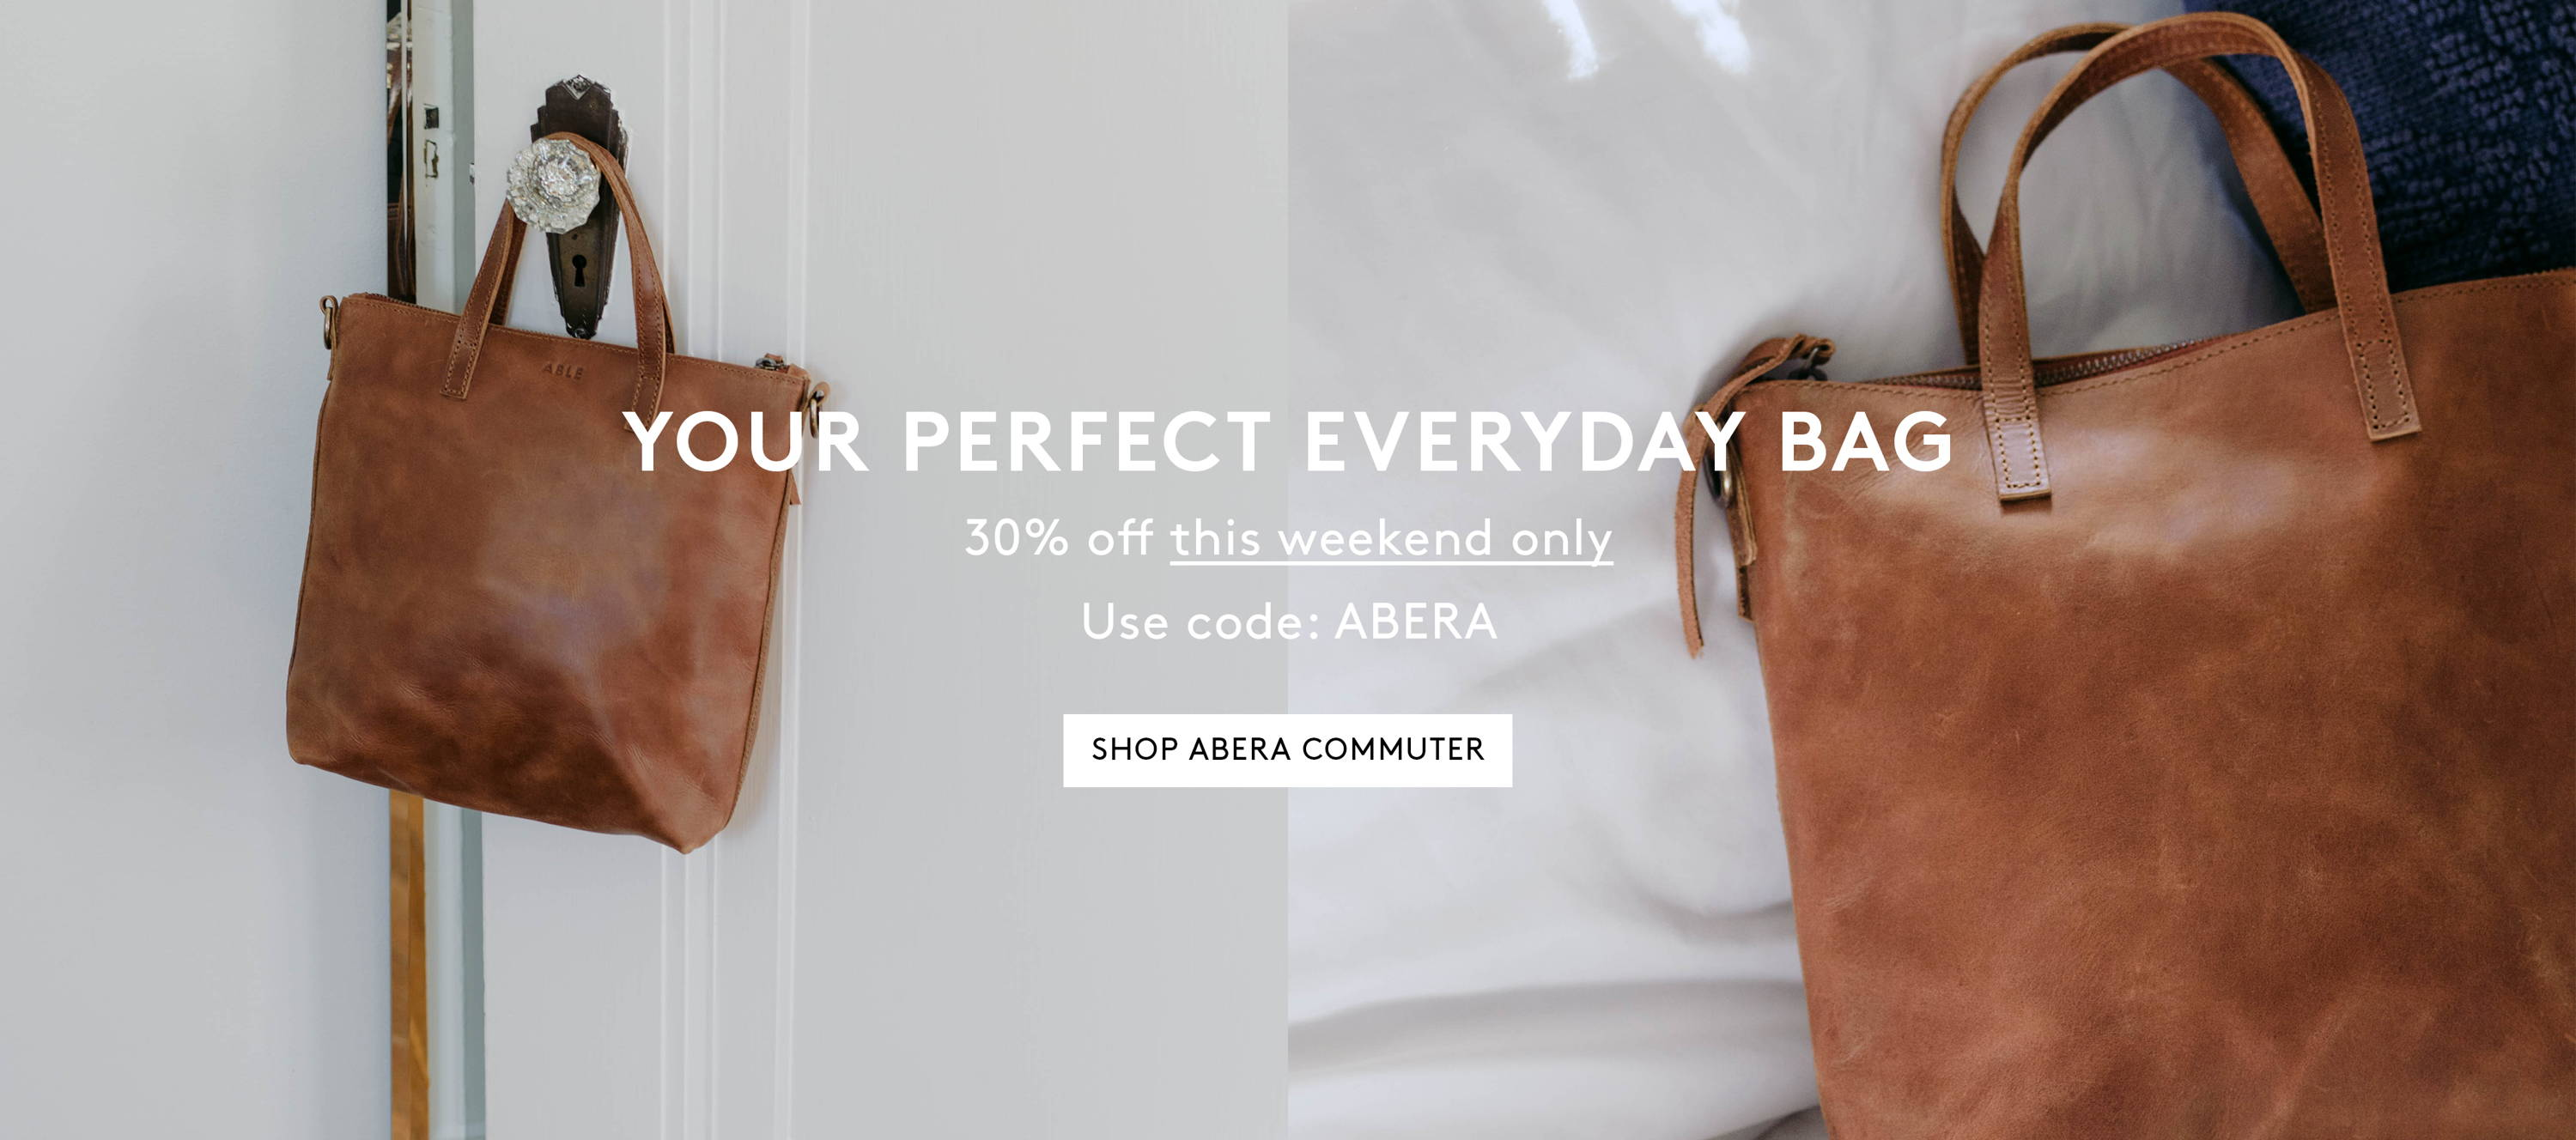 Your Perfect Everyday Bag - Take 30% off Abera Commuter with code ABERA